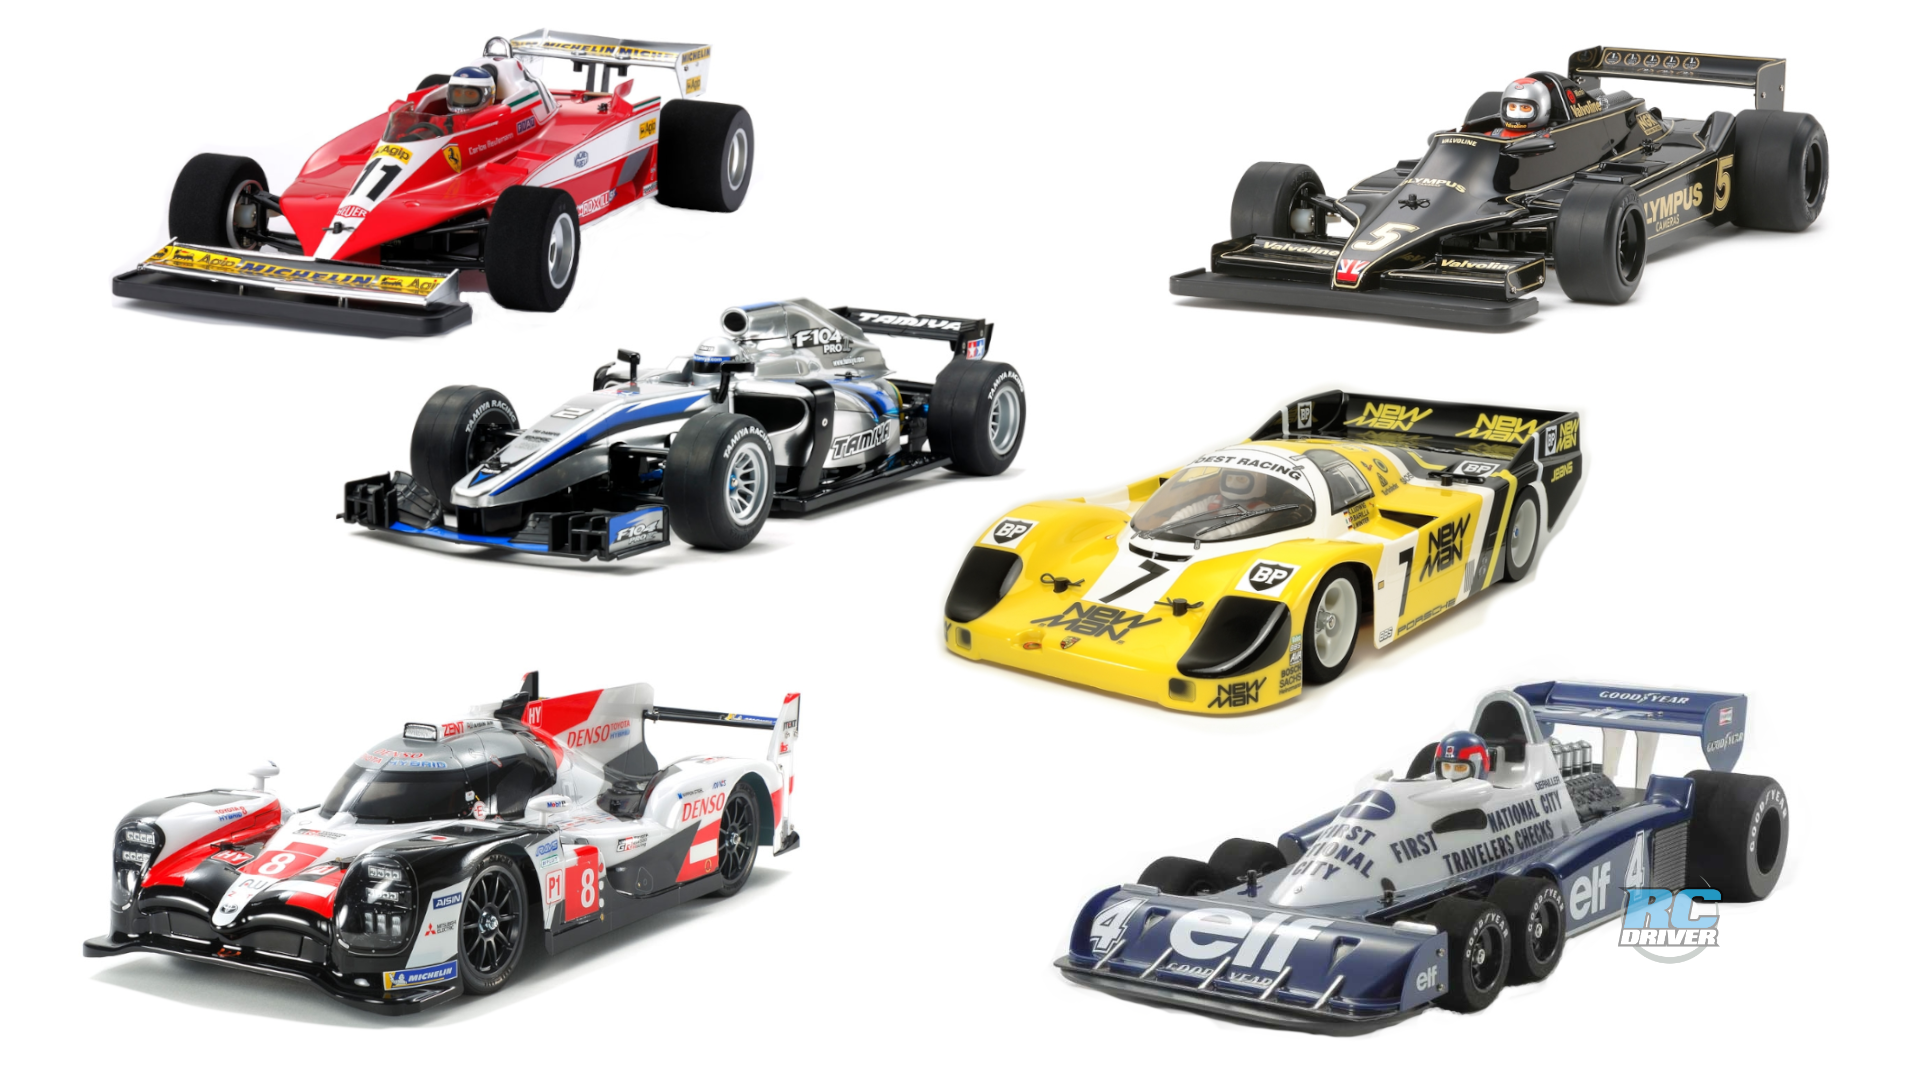 Tamiya's purpose built on-road racecar offerings